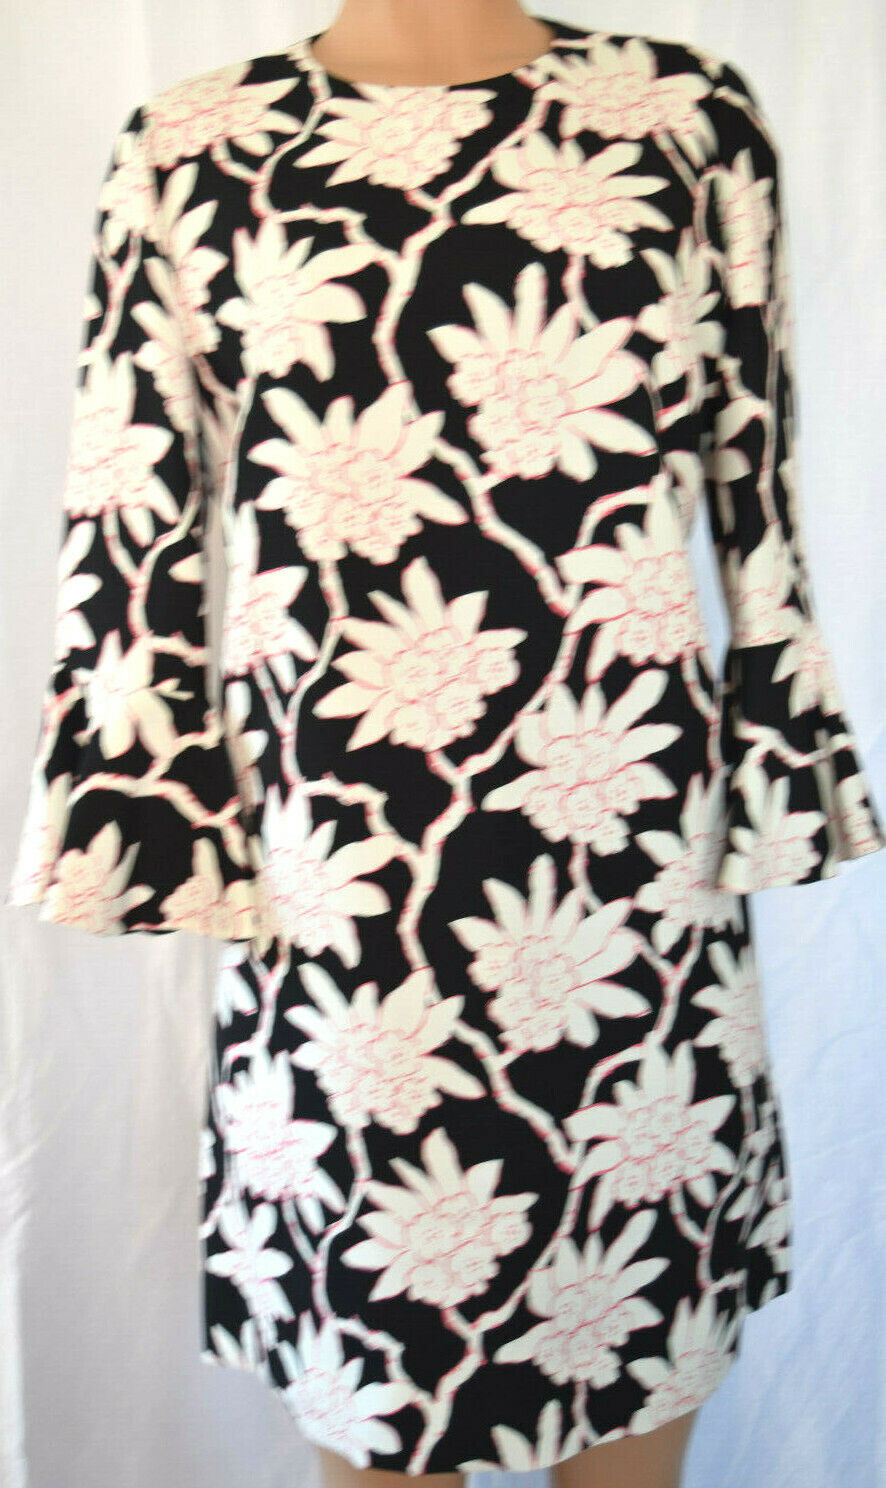 VALENTINO MULTI-COLOR FLORAL 3 4 BELL SLEEVES WIGGLE PENCIL DRESS SIZE 12